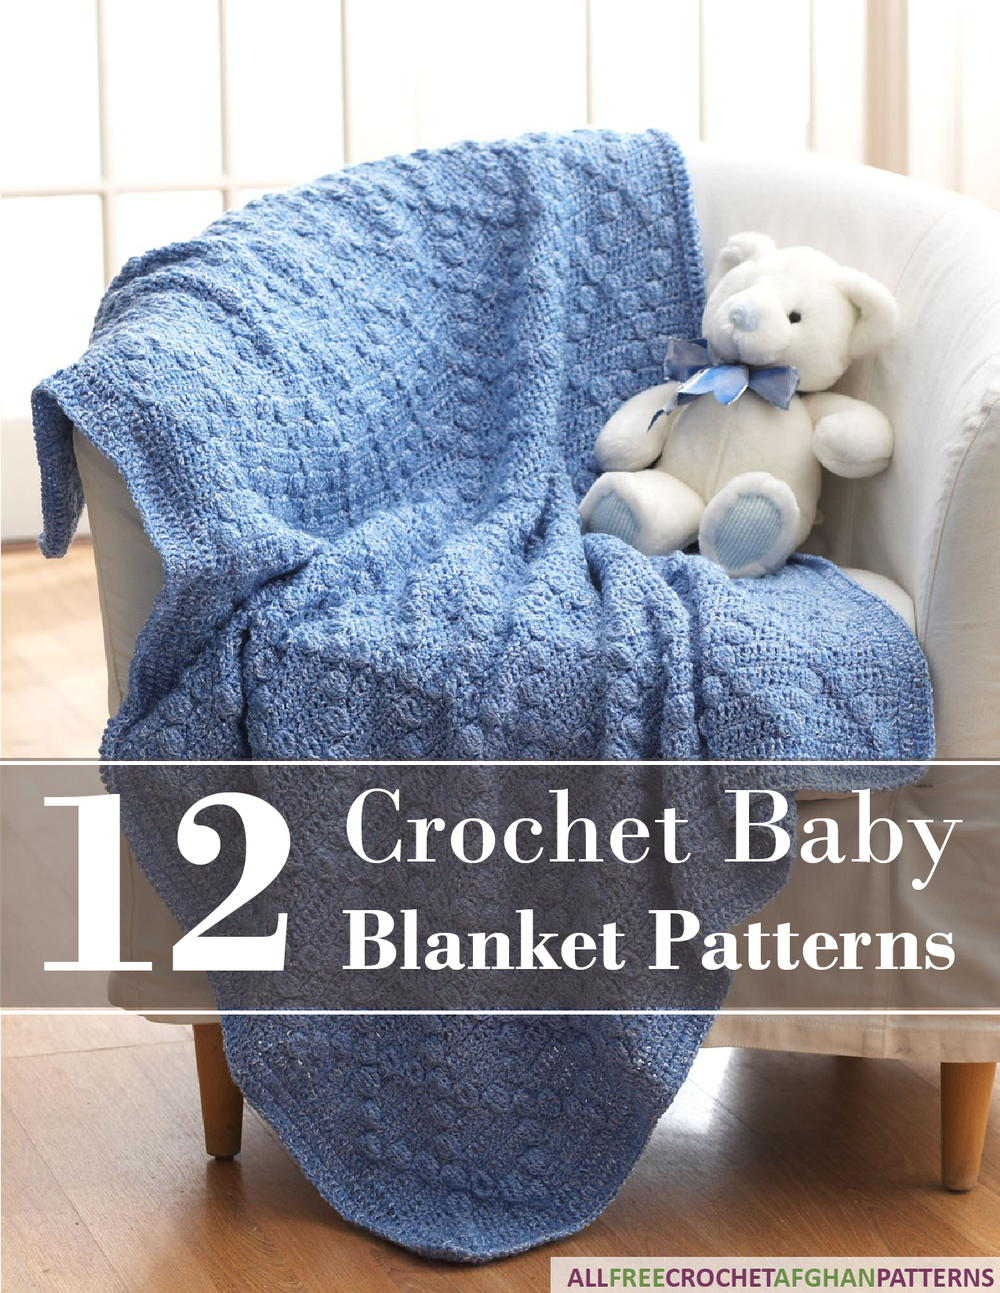 Book Cover Crochet Instructions : Crochet baby blanket patterns free ebook